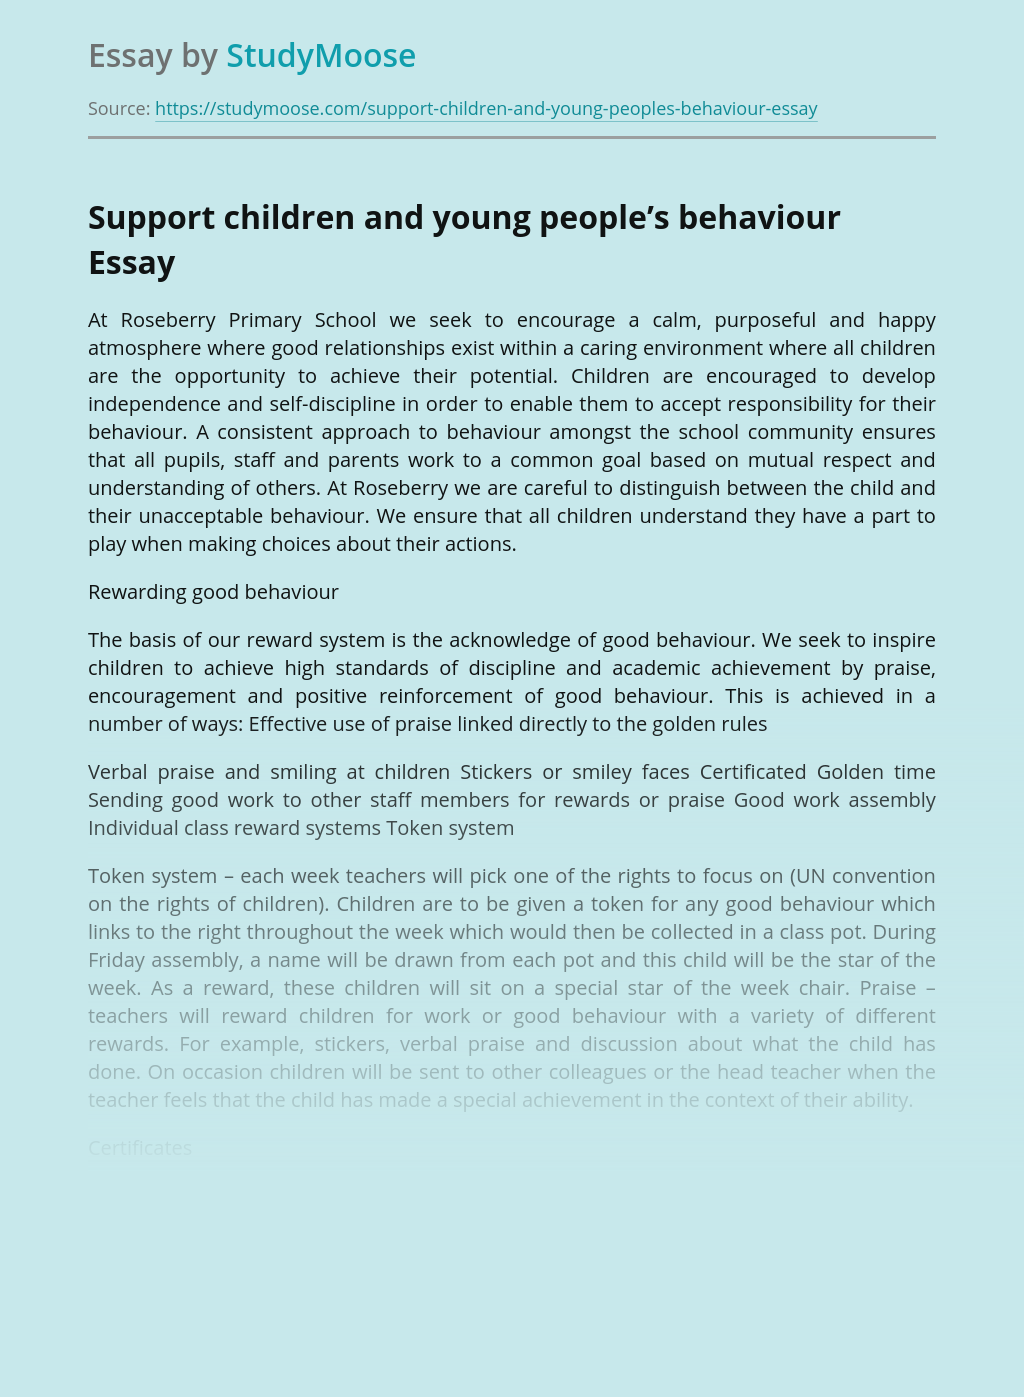 Support children and young people's behaviour